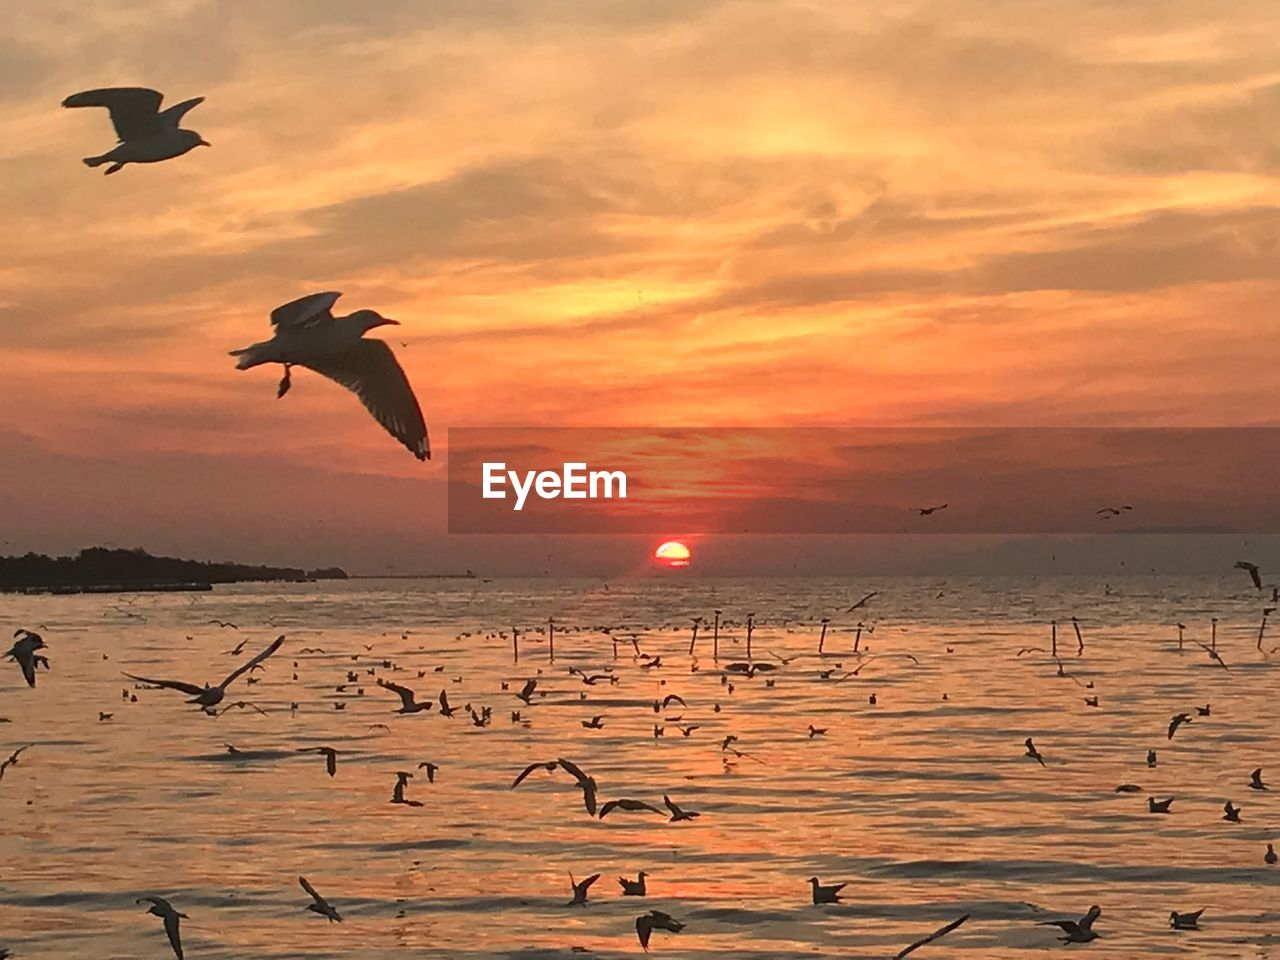 sunset, sea, nature, beauty in nature, water, orange color, sky, scenics, flying, outdoors, bird, sun, silhouette, mid-air, beach, no people, tranquility, horizon over water, animal themes, animals in the wild, large group of animals, spread wings, day